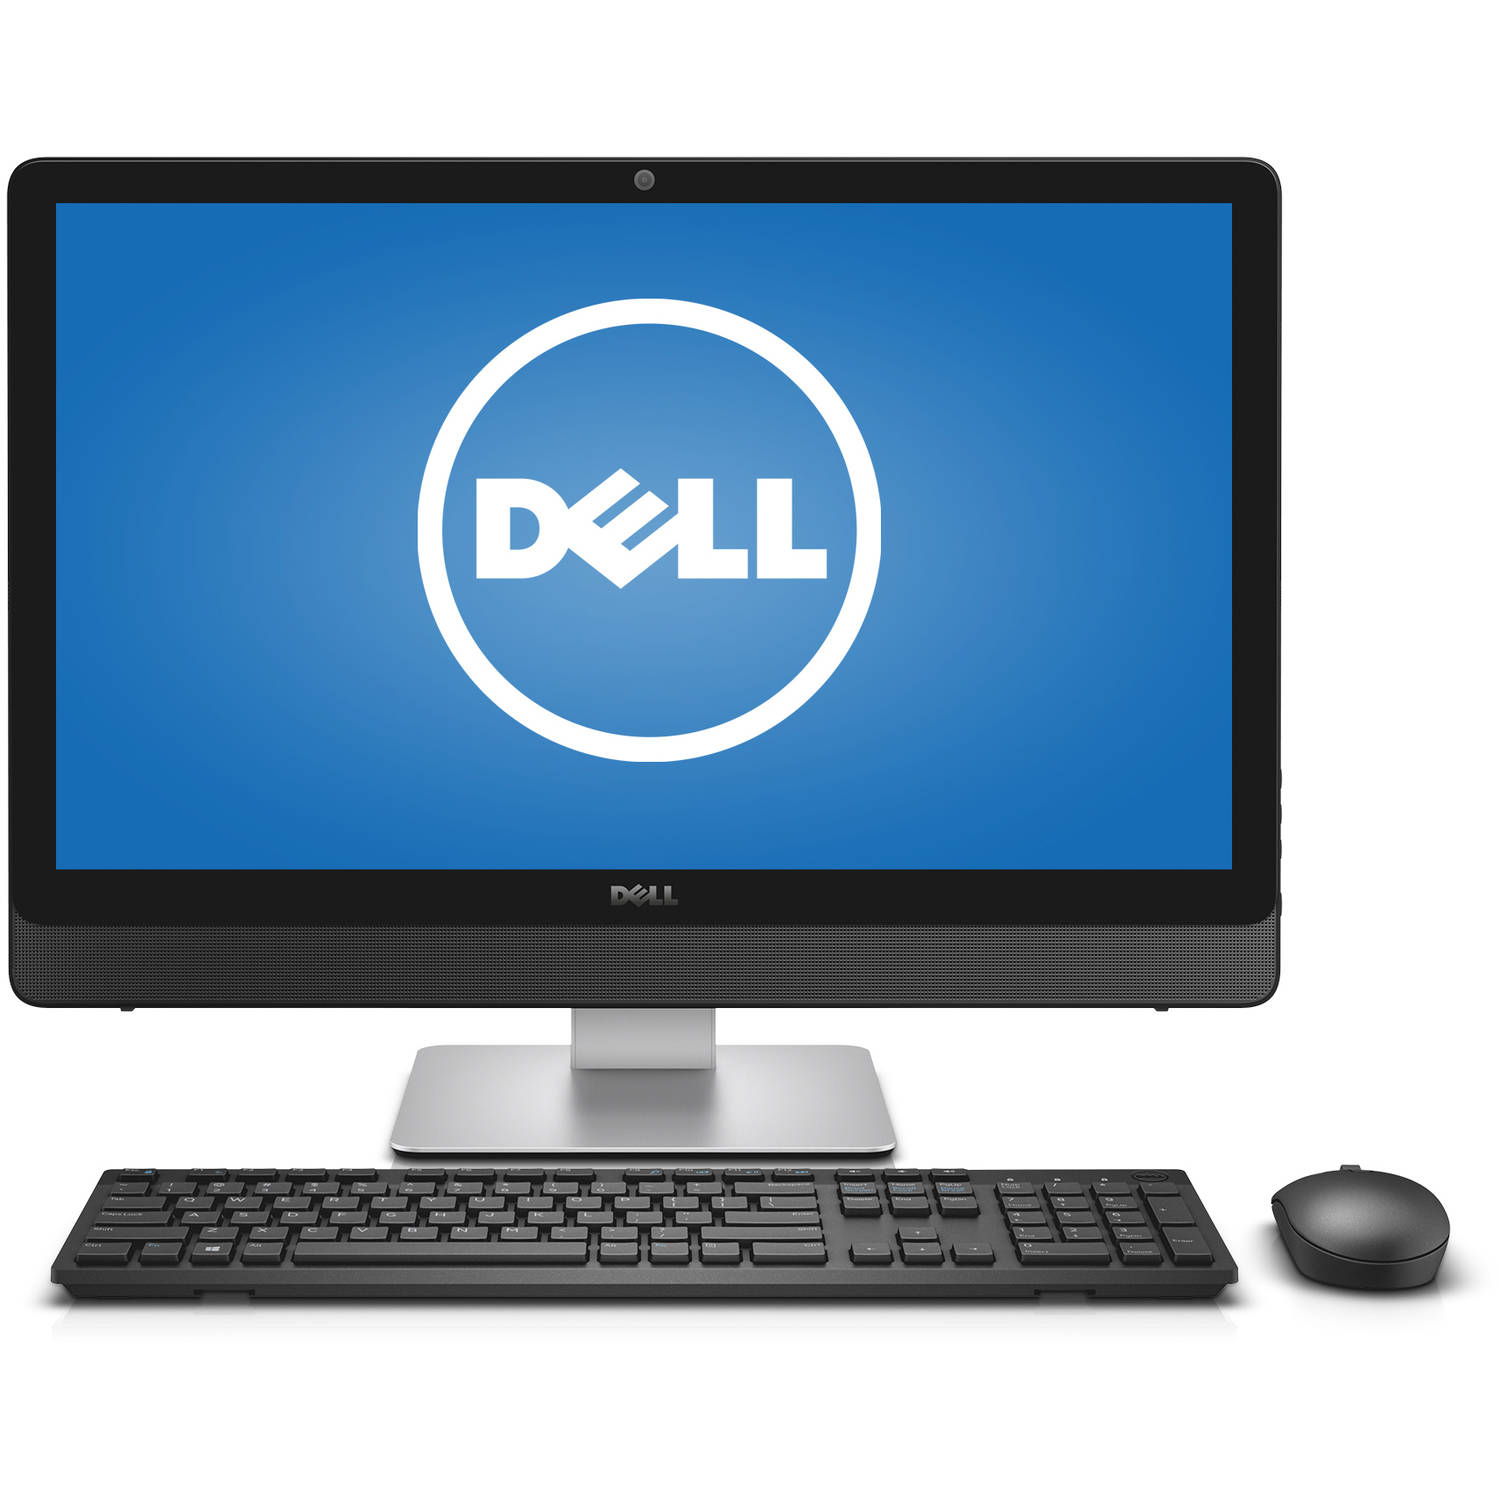 "Dell Silver Inspiron 5459 All-In-One Desktop PC with Intel Core i5-6400T Processor, 8GB Memory, 23.8"" touch screen Display, 1TB Hard Drive and Windows 10 Home"